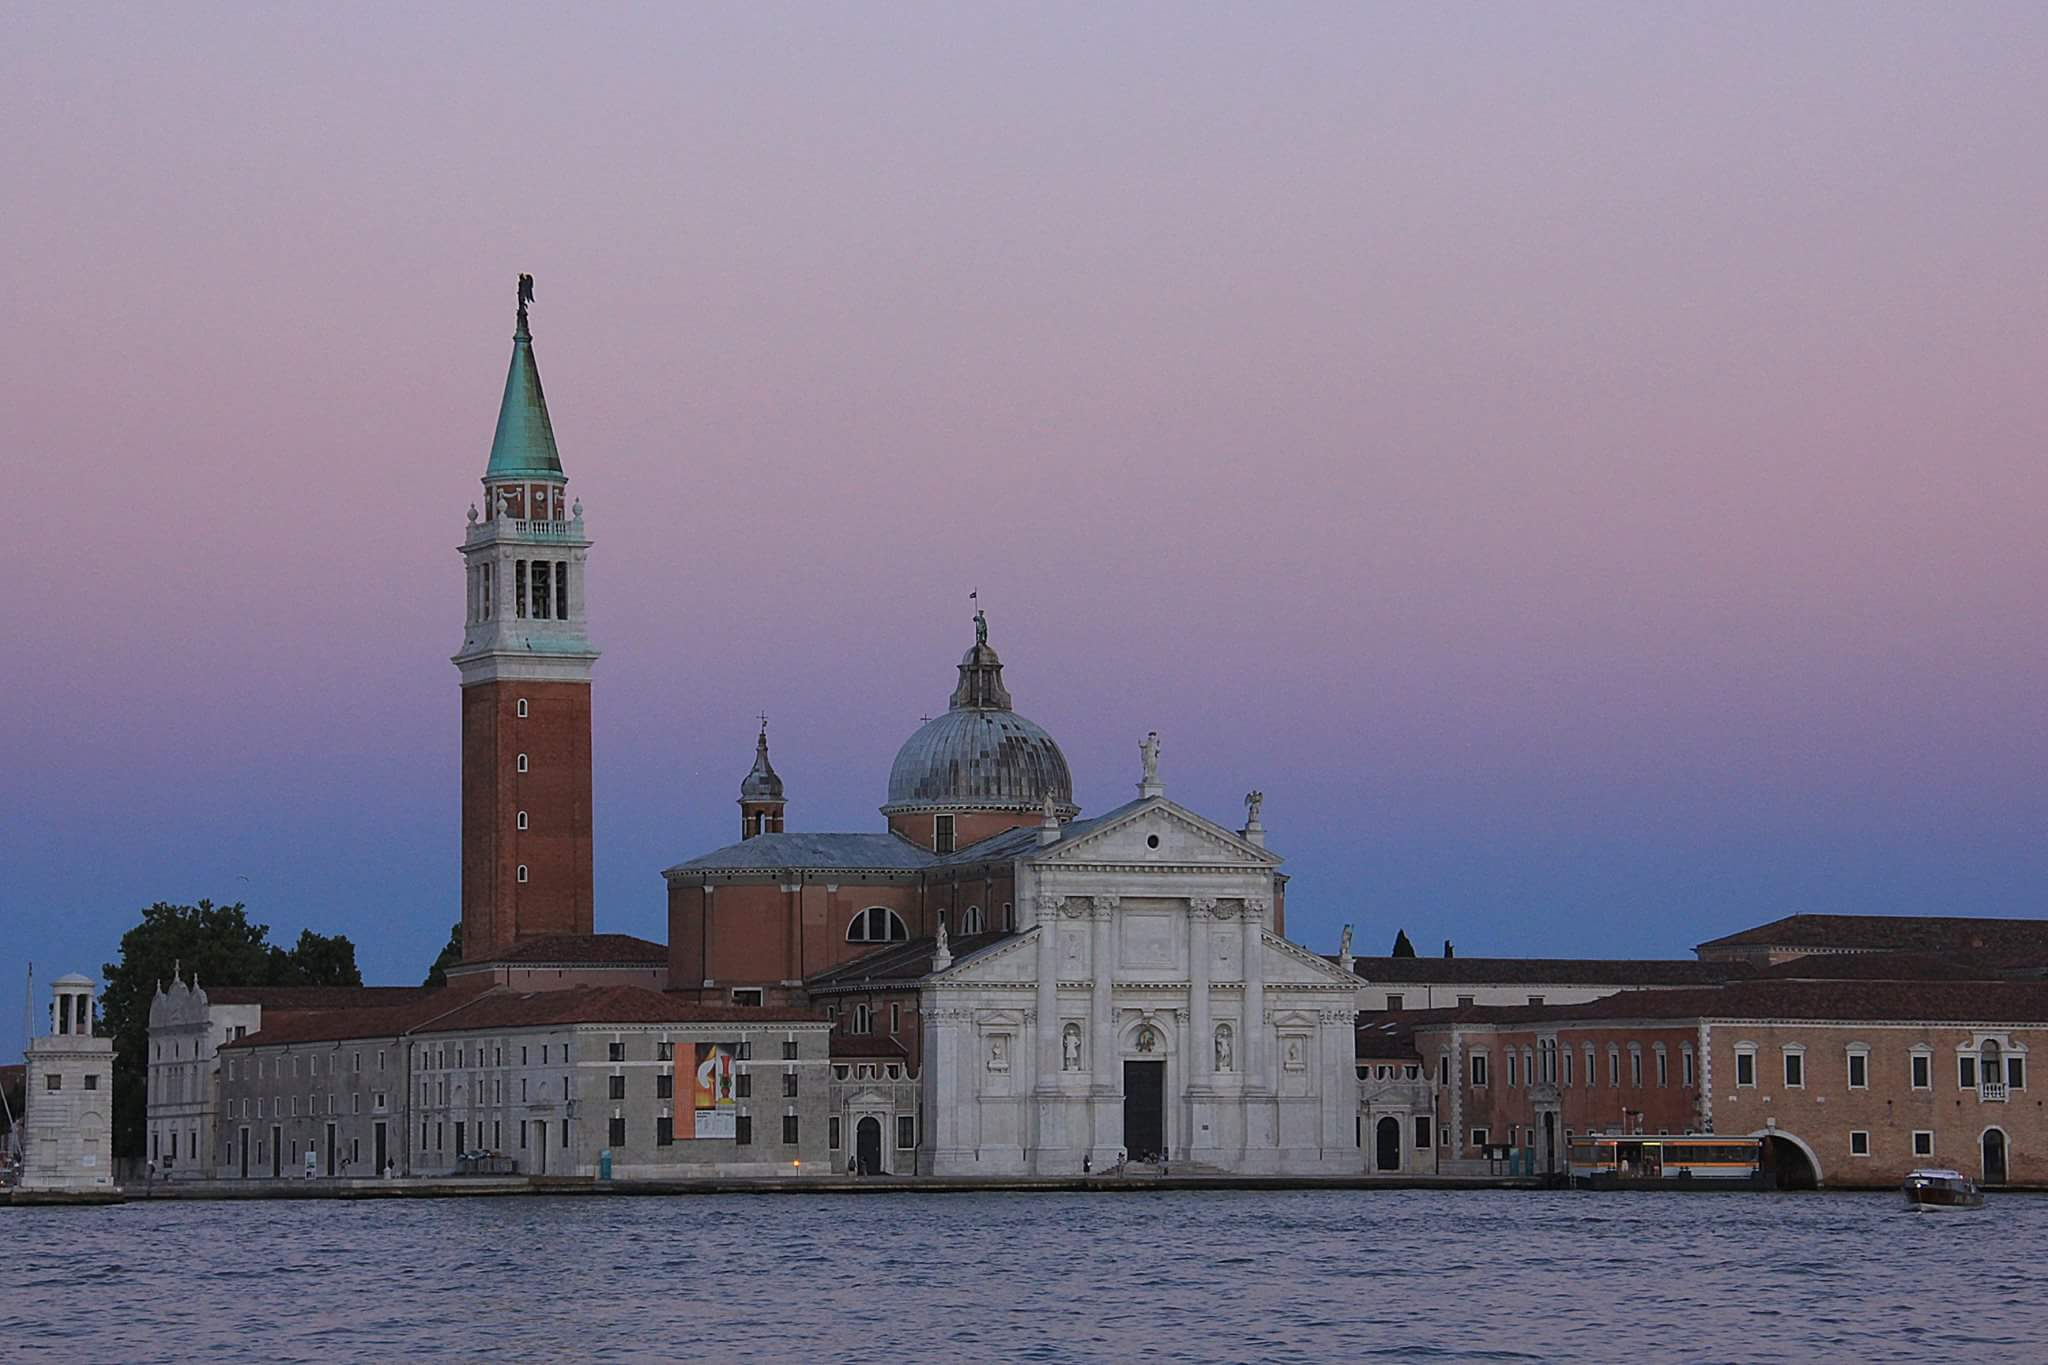 Venice on a budget is possible because its magnificent beauty is for free